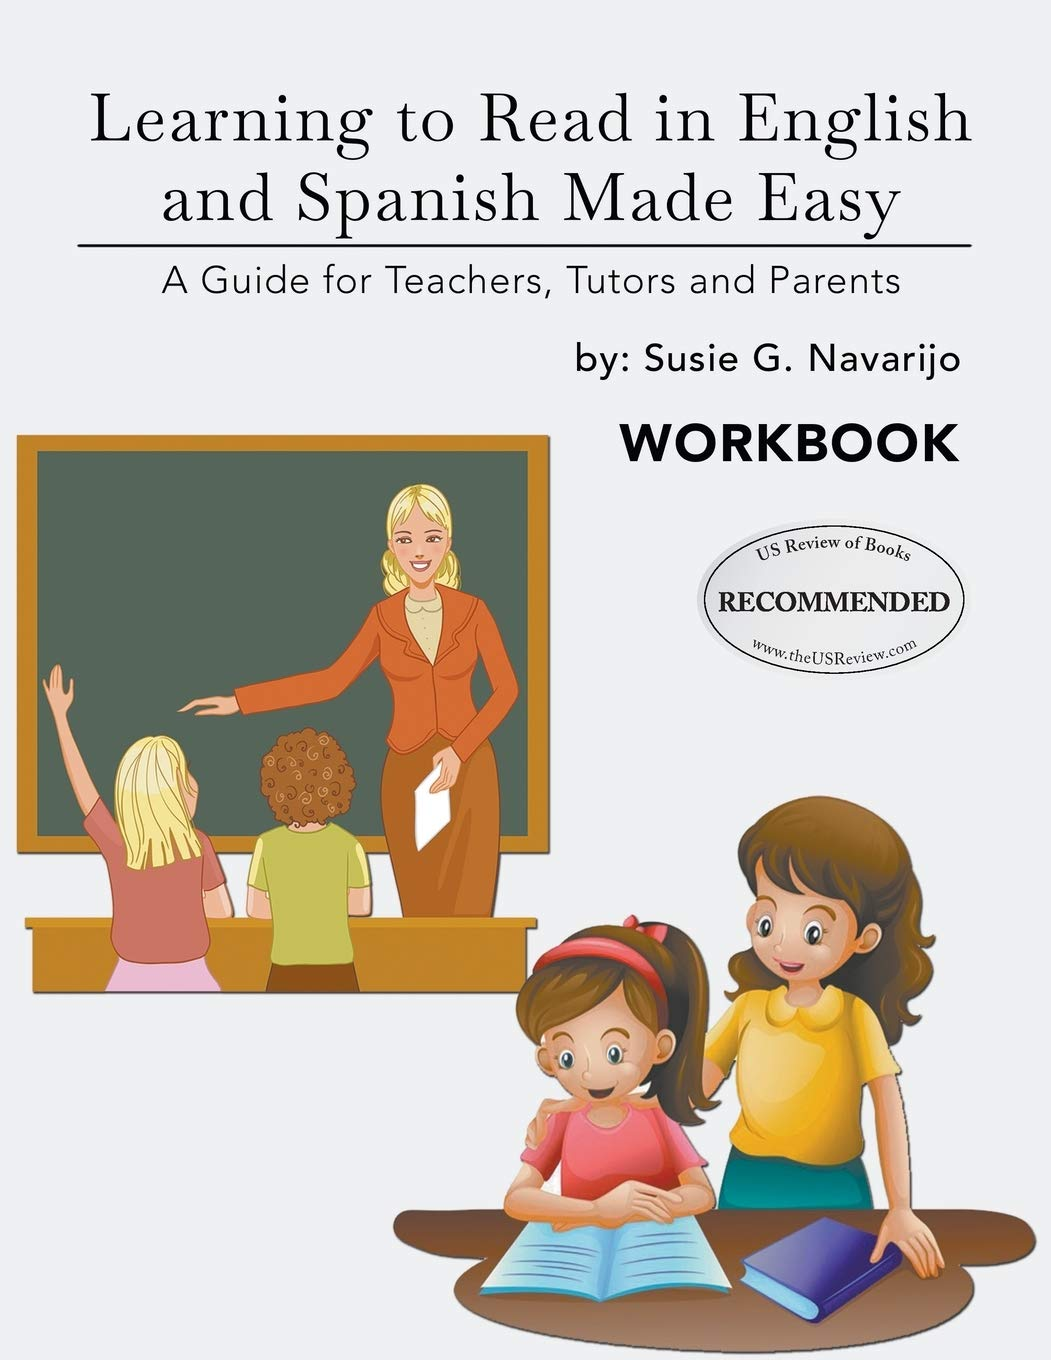 Learning to Read in English and Spanish Made Easy